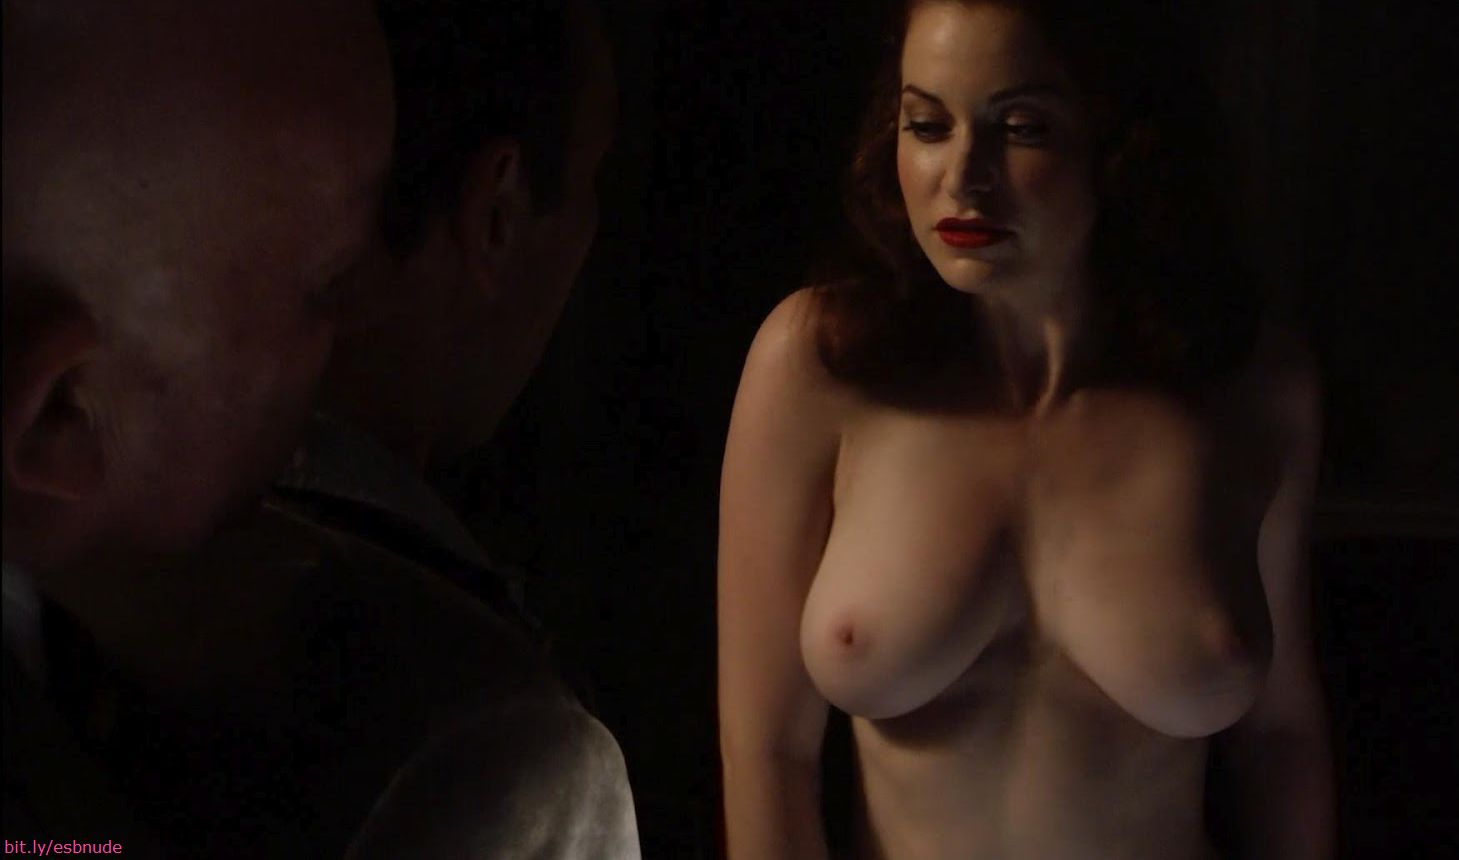 Esme bianco game of thrones nude scenes